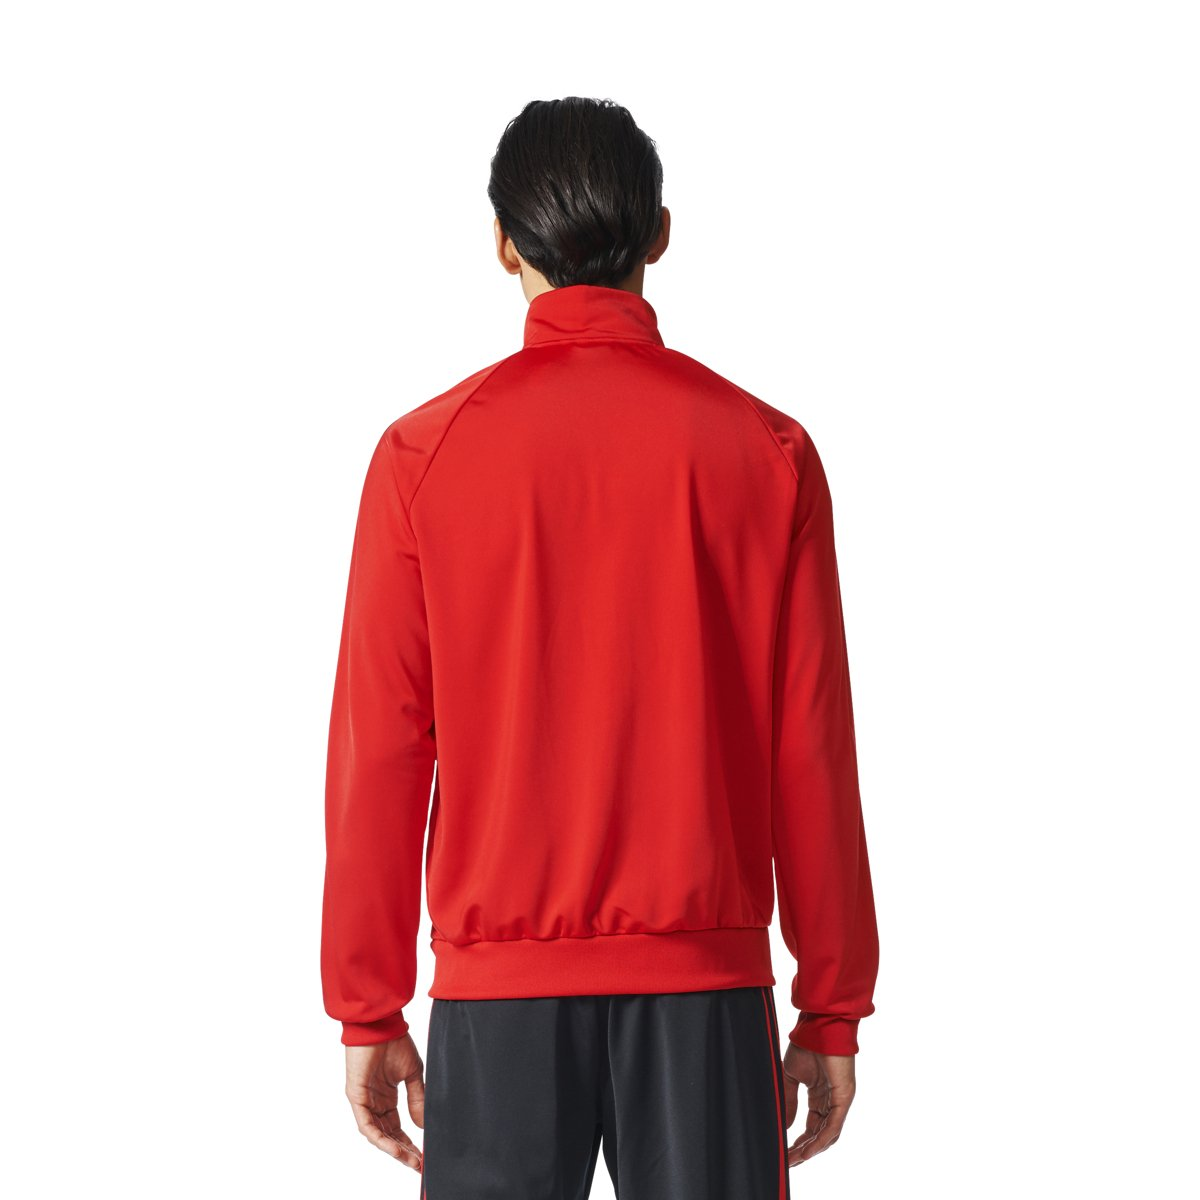 adidas Men's Essentials 3-Stripe Tricot Track Jacket, Scarlet/Black, Small by adidas (Image #2)